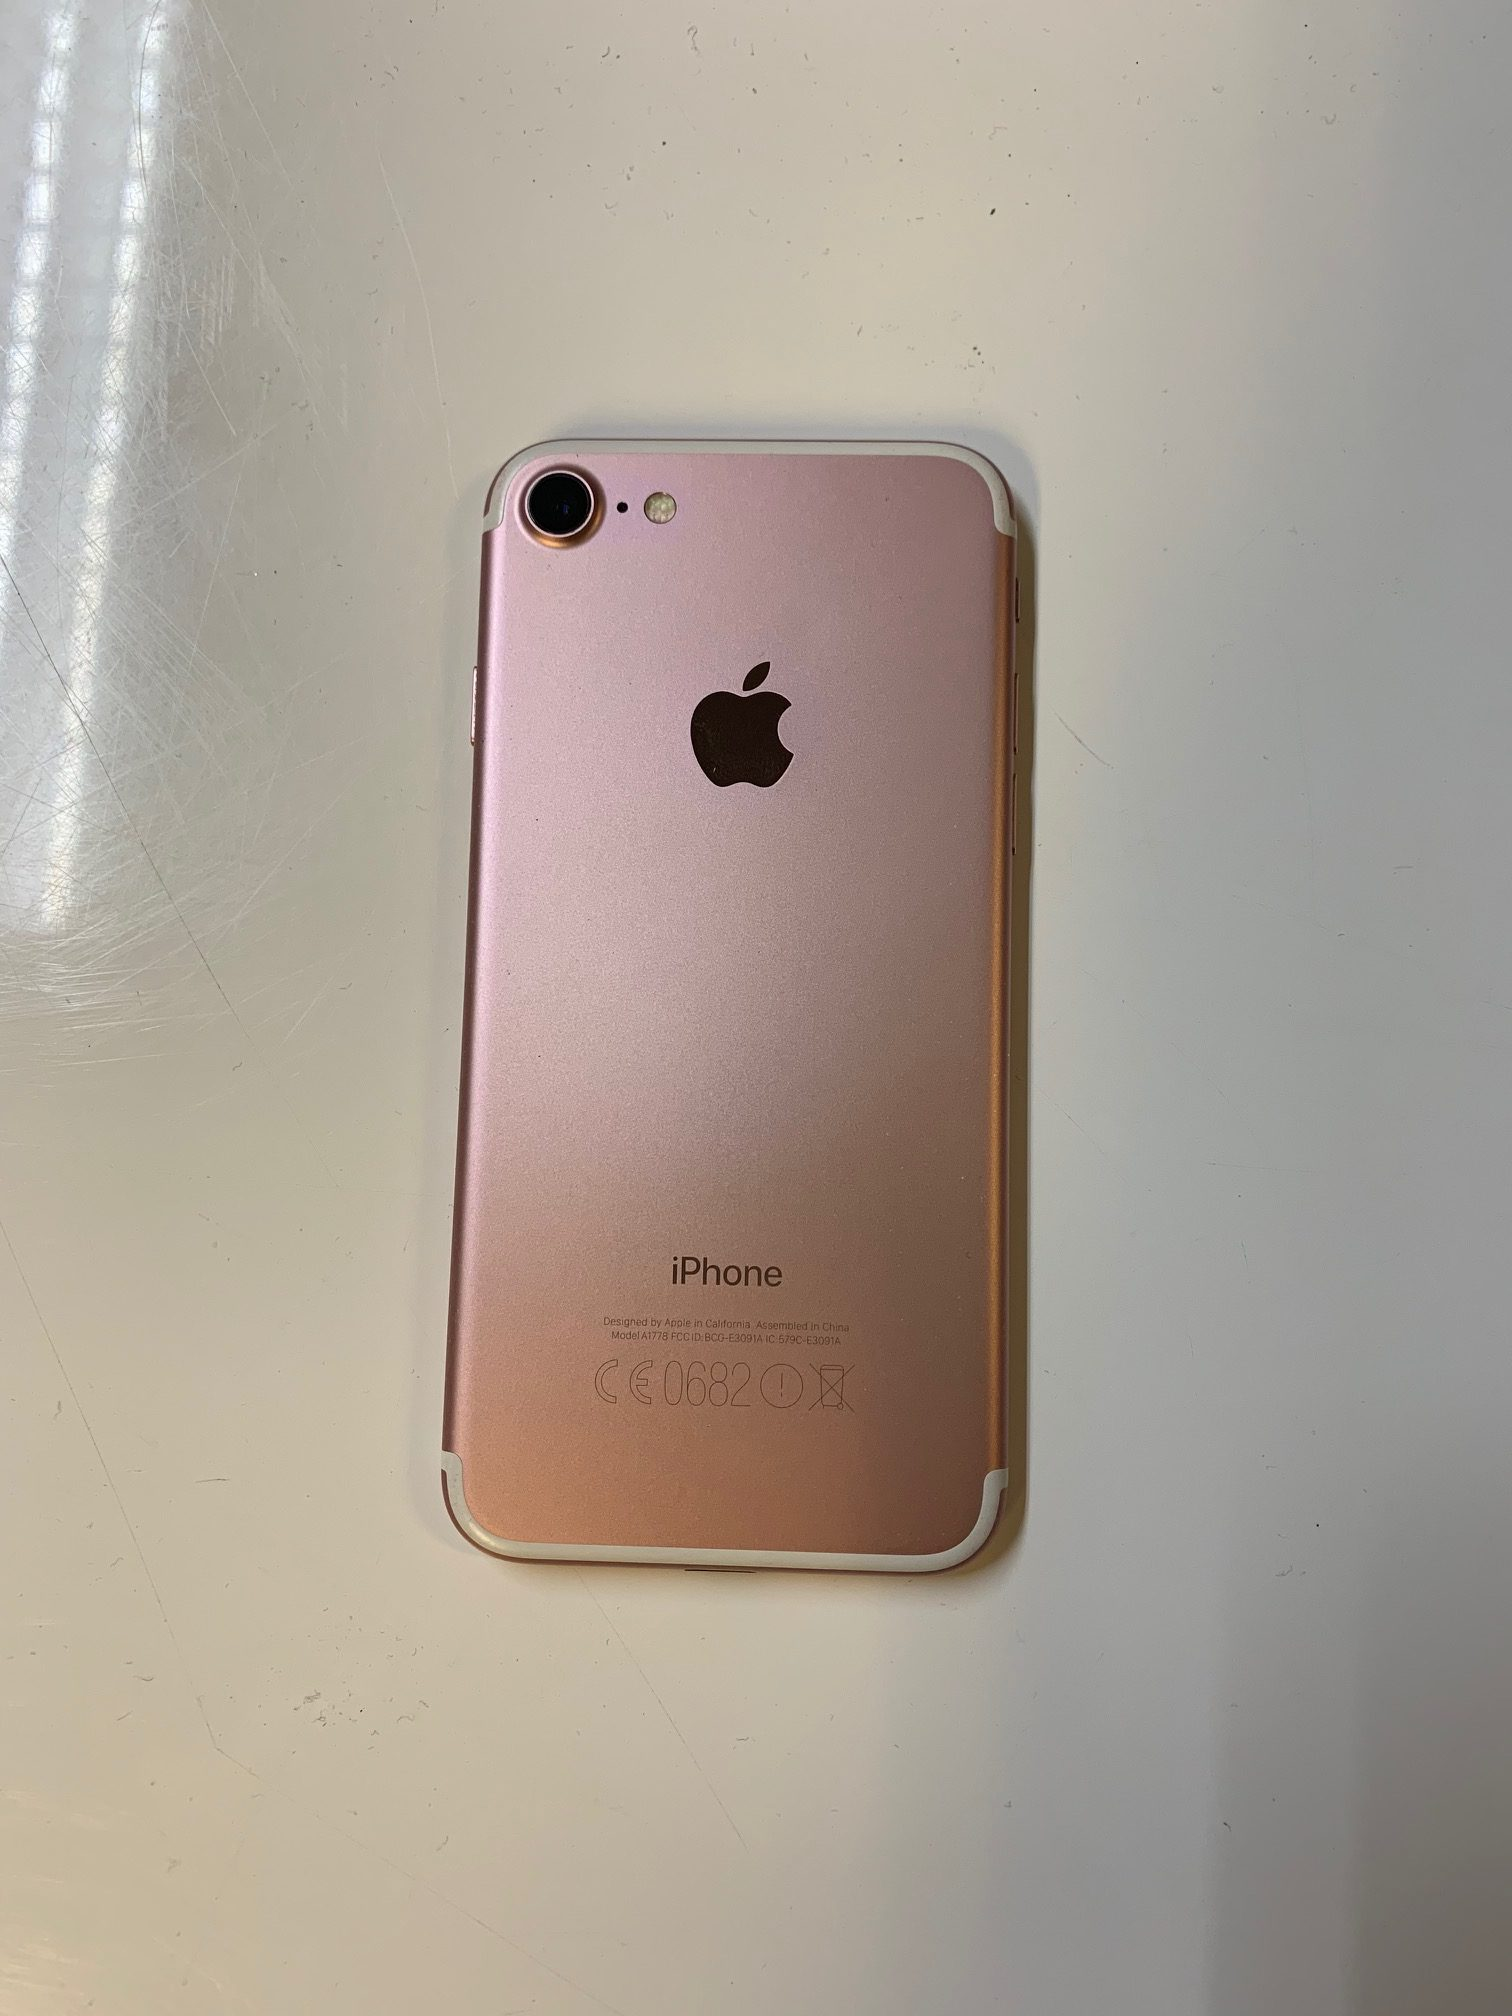 iPhone 7 128GB, 128GB, Rose Gold, imagen 2